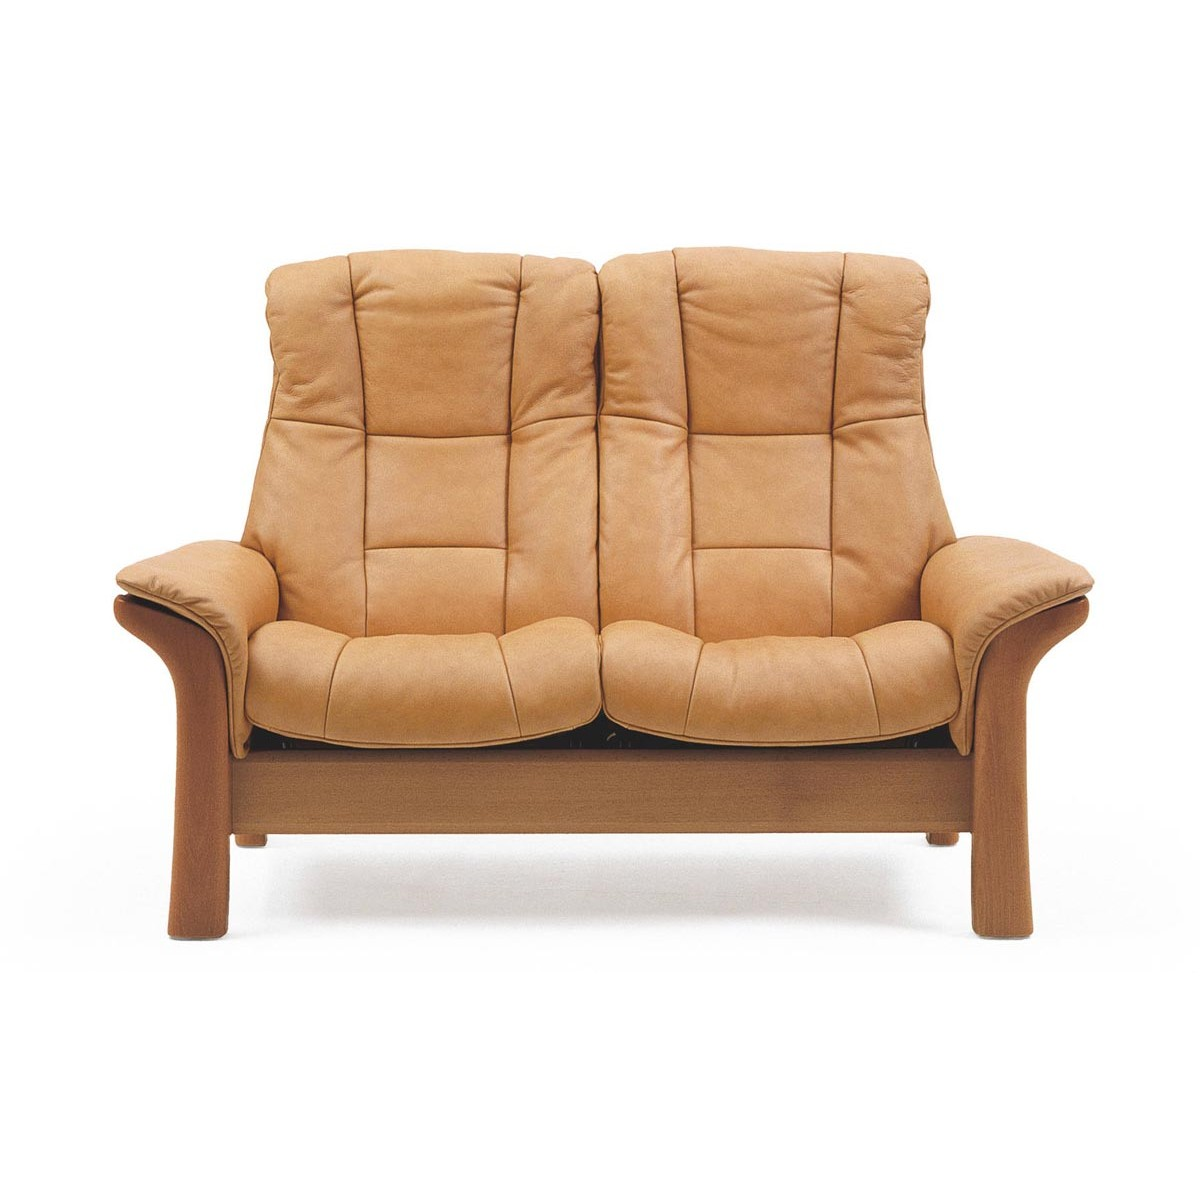 Stressless Windsor High Back Loveseat From 4 095 00 By